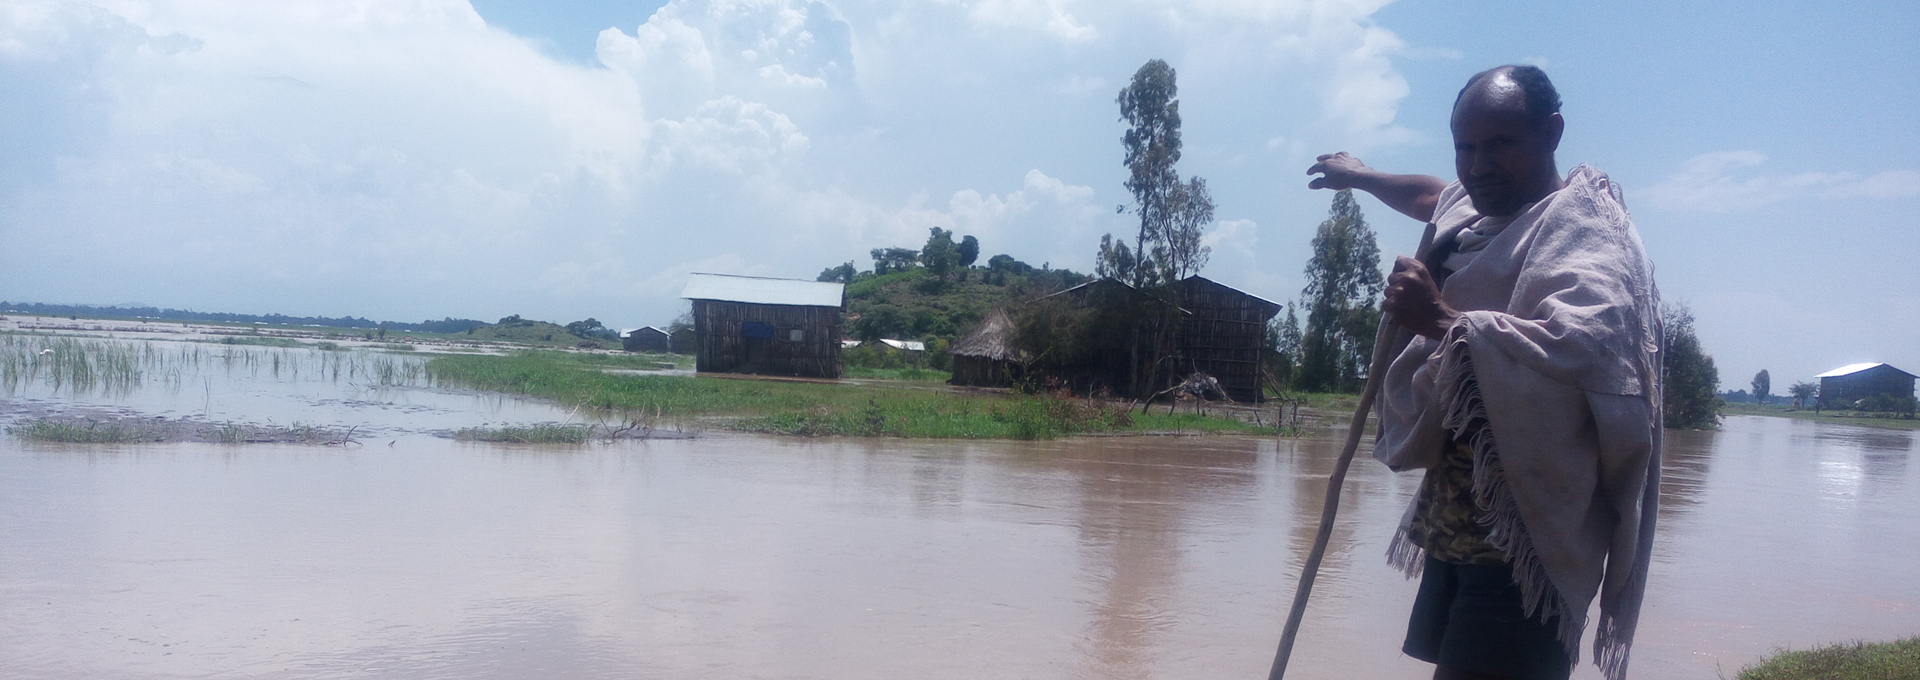 Amhara region of north west Ethiopia surrounded by floodwater